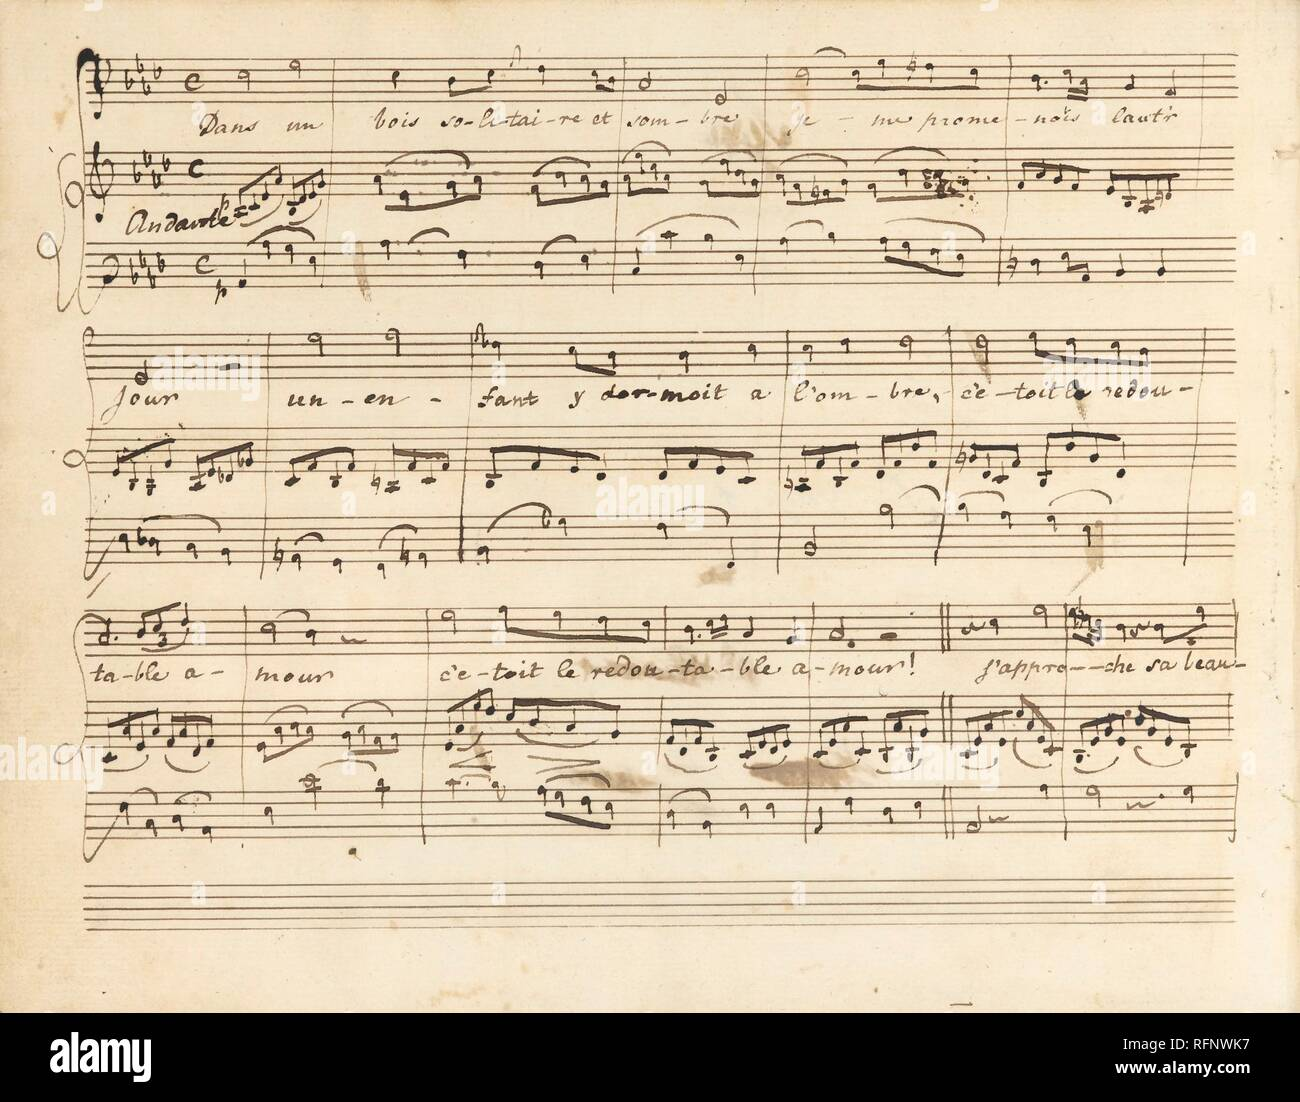 Mozart, Wolfgang Amadeus LATE EIGHTEENTH-CENTURY ENGLISH MANUSCRIPT OF ARIAS AND DUETS BY MOZART, TOGETHER WITH SONGS AND AIRS BY BIANCH.jpg - RFNWK7 - Stock Image